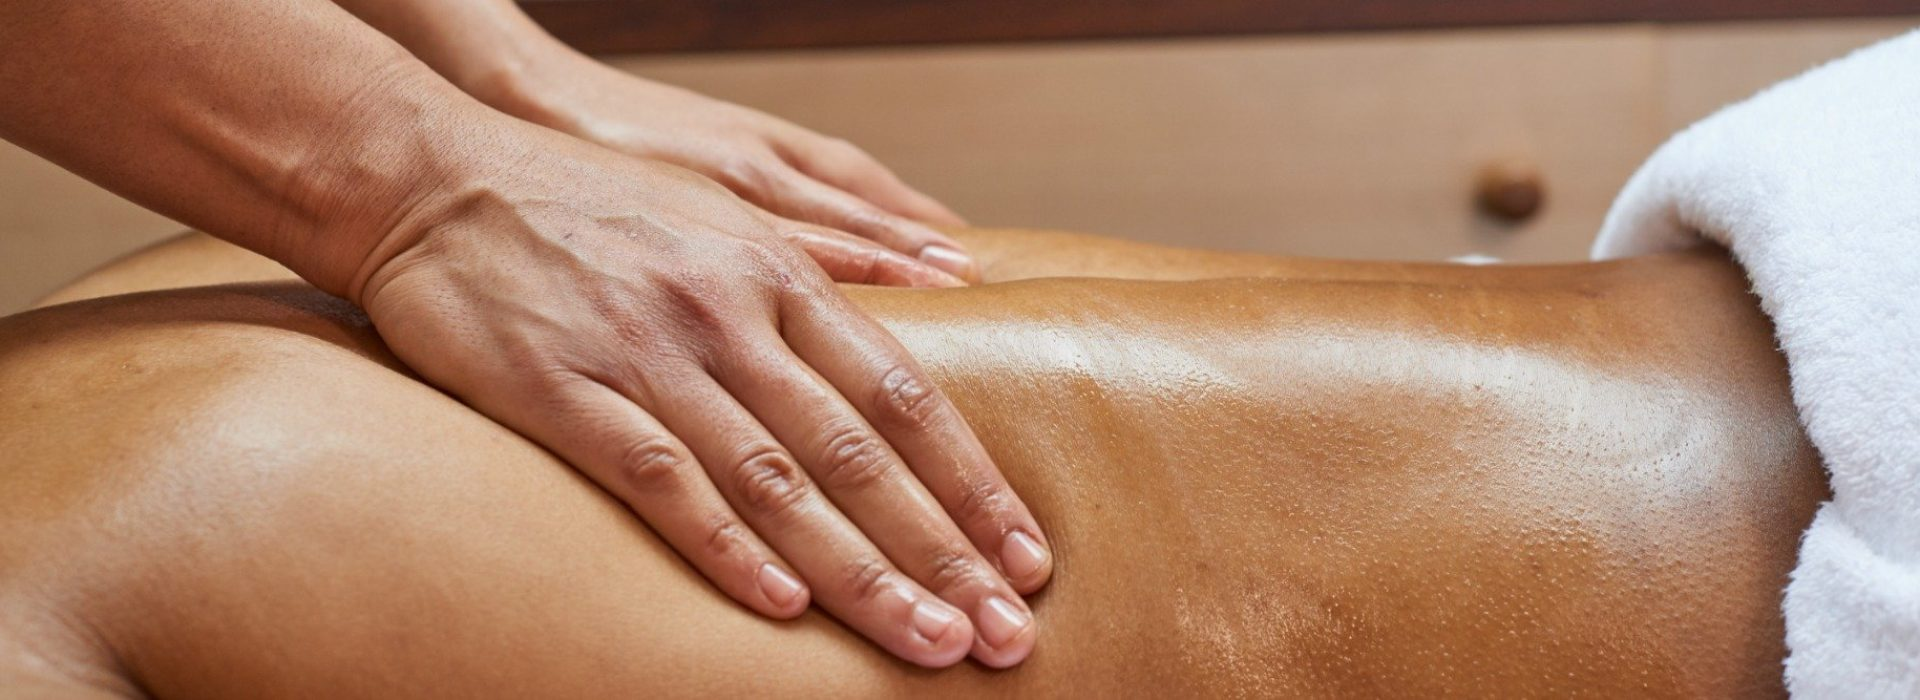 London Massage | Soho, Camden, Shoreditch, Chelsea, Ealing